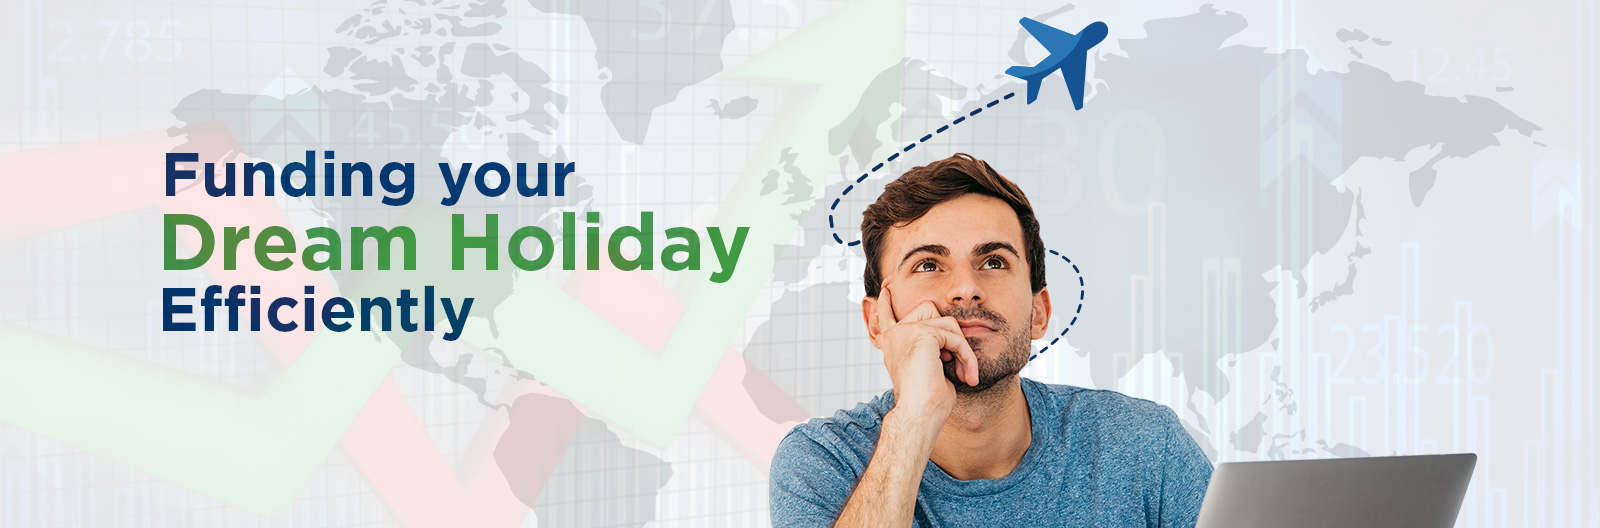 funding your dream holiday efficiently